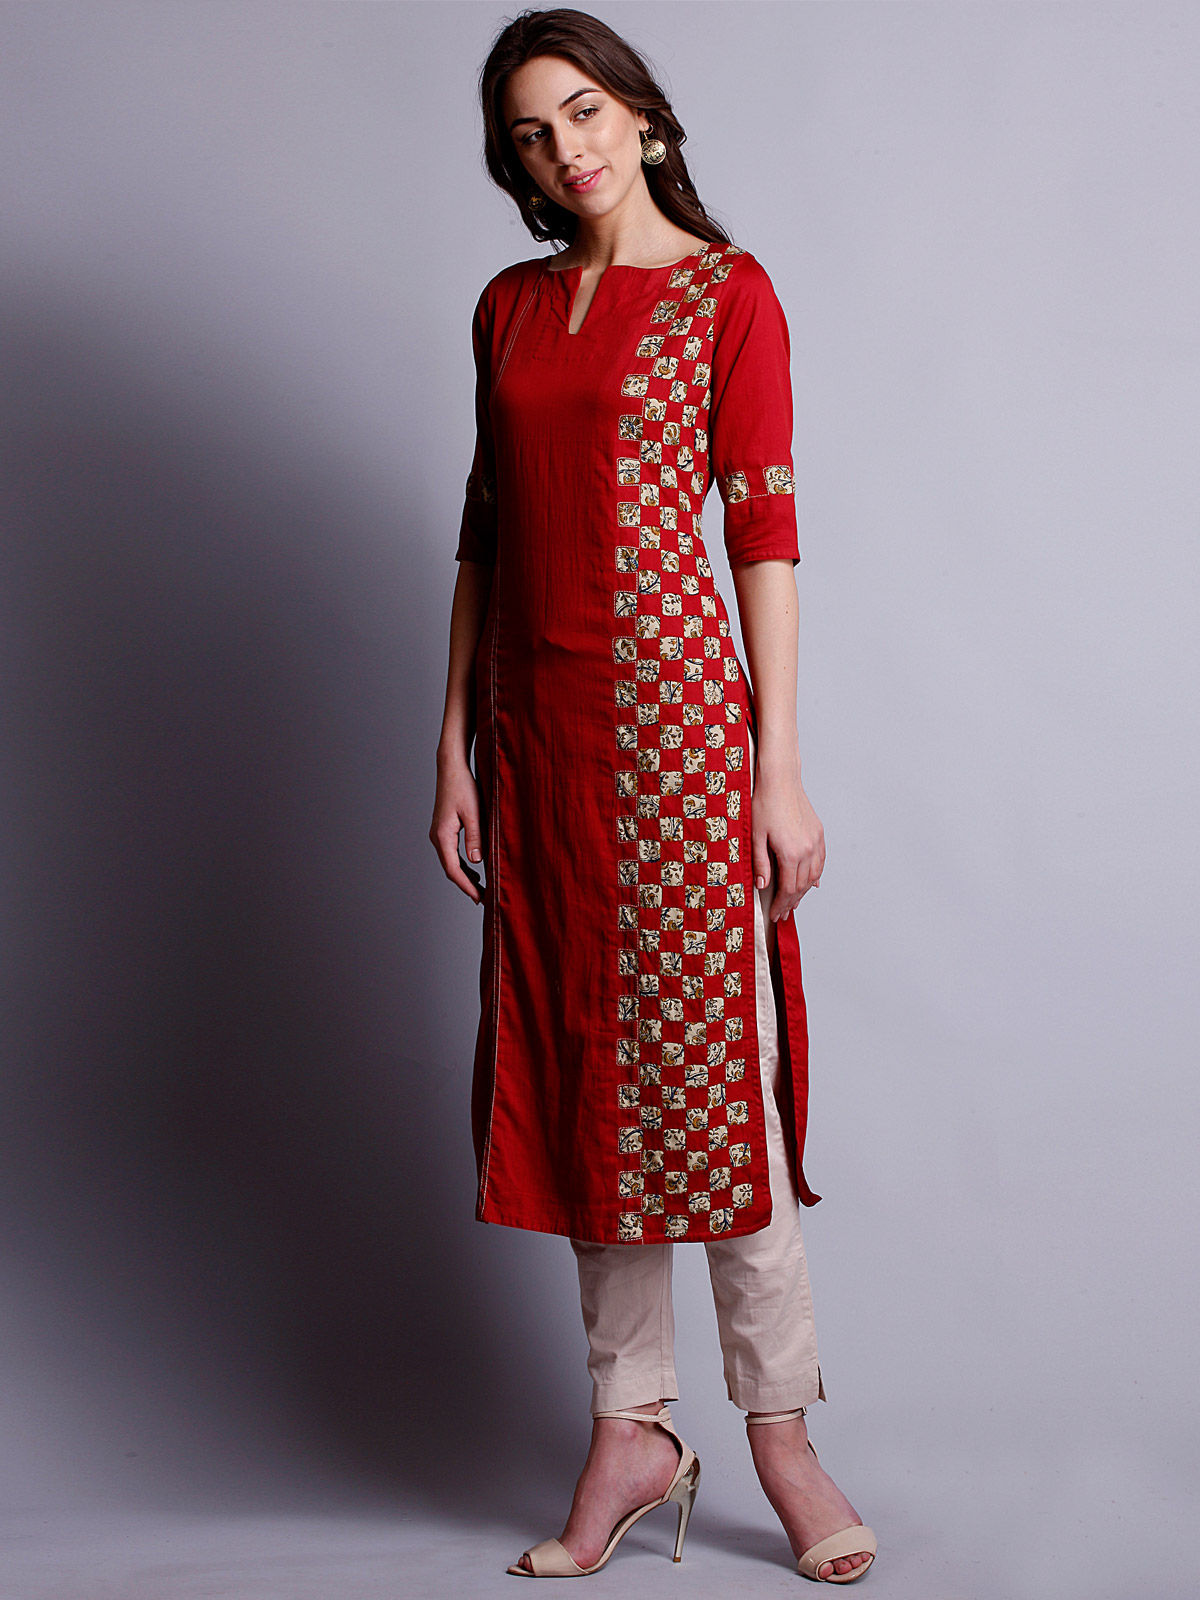 Red color reverse applique cotton satin  kurta with side panel detailing.